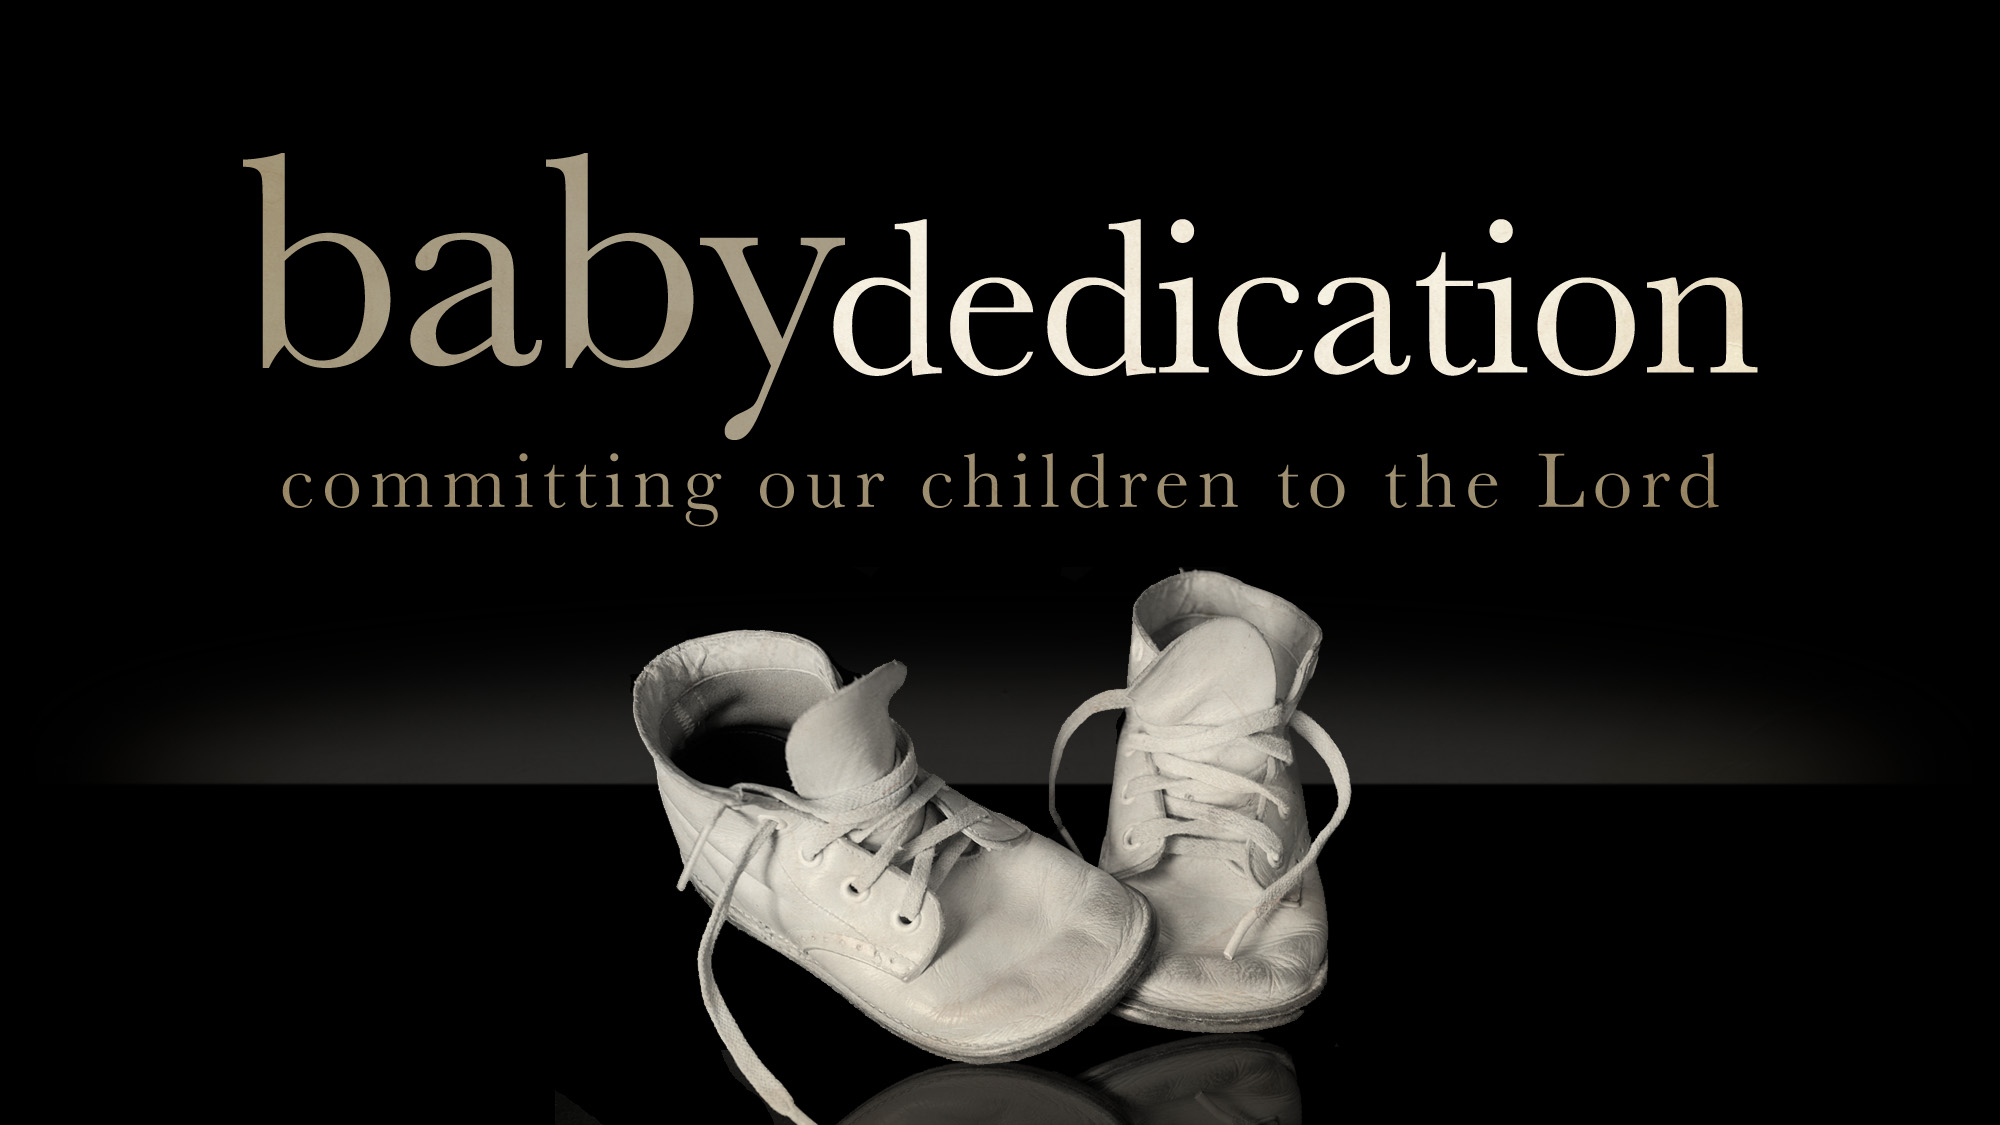 Baby dedication wide t